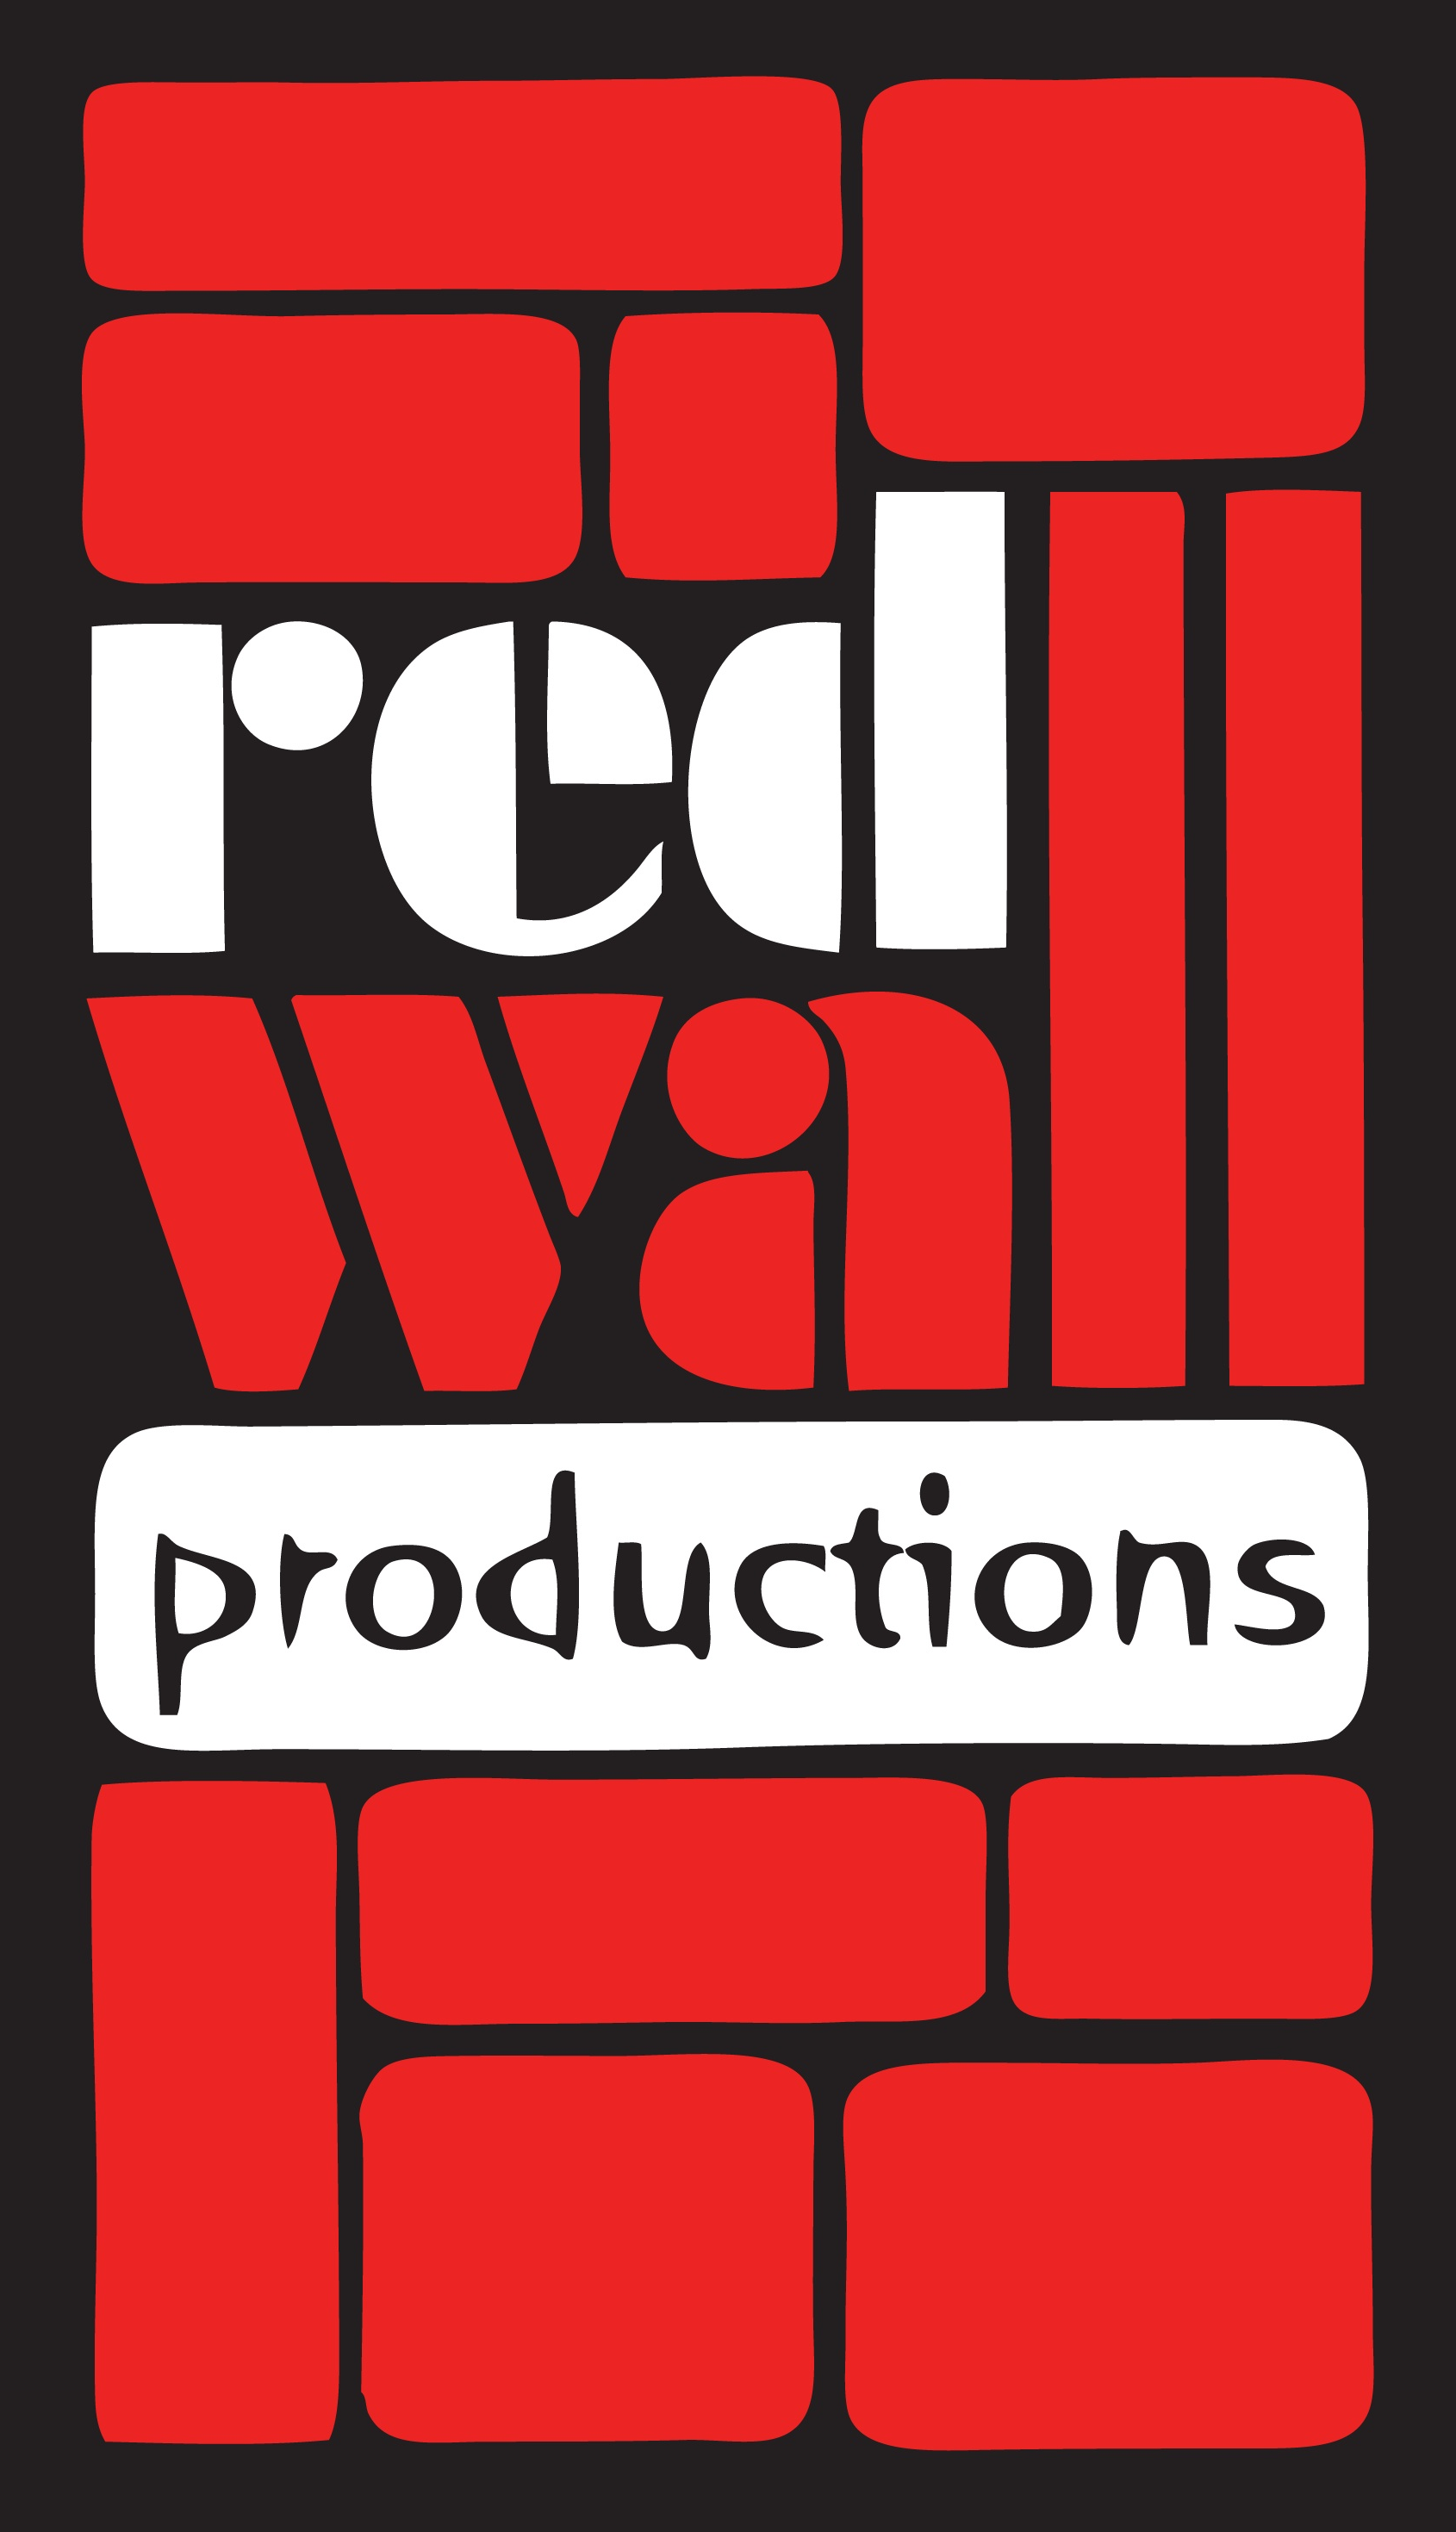 Red Wall Productions